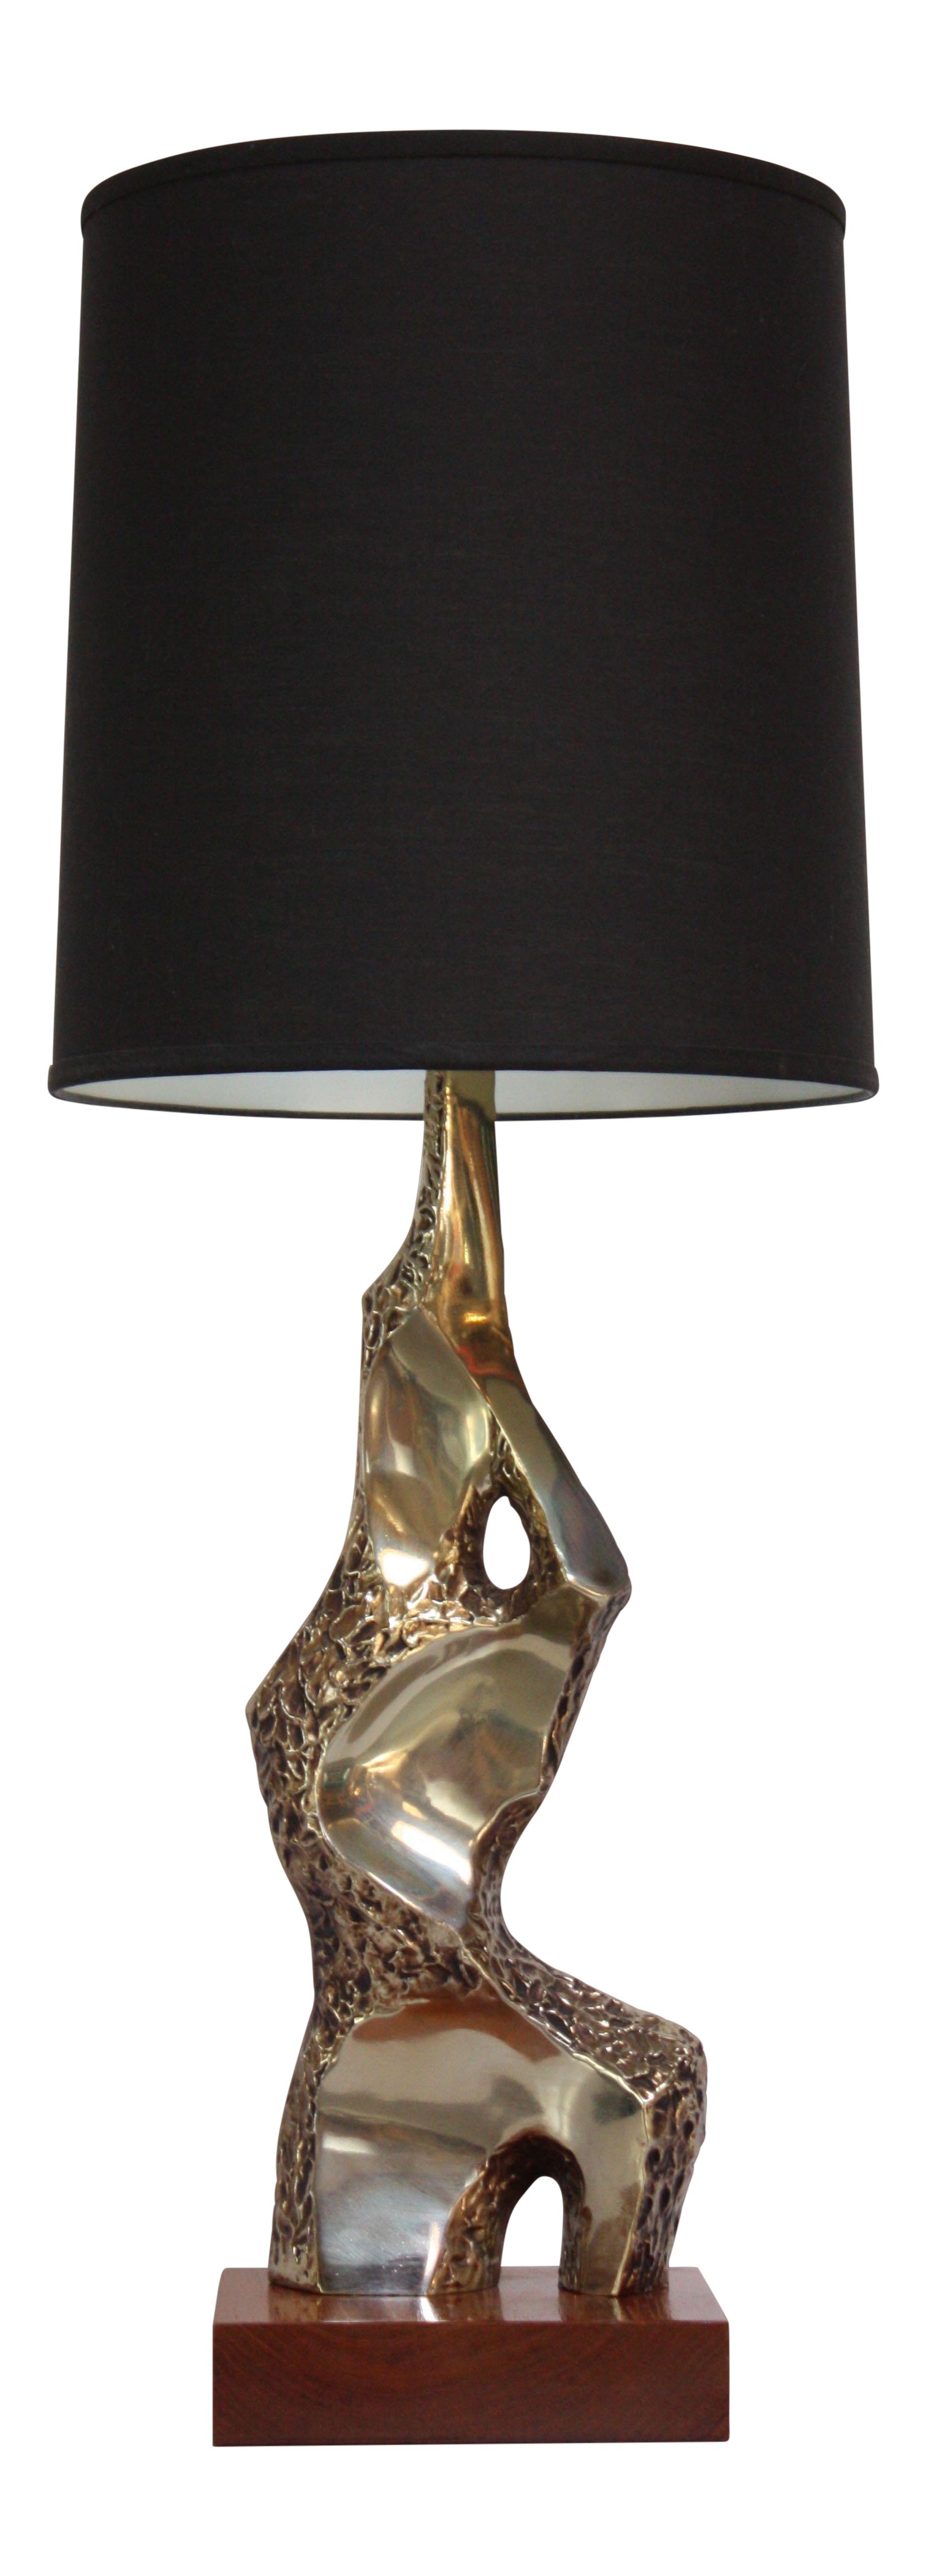 Superb Sculptural Brutalist Brass Table Lamp By Maurizio Tempestini